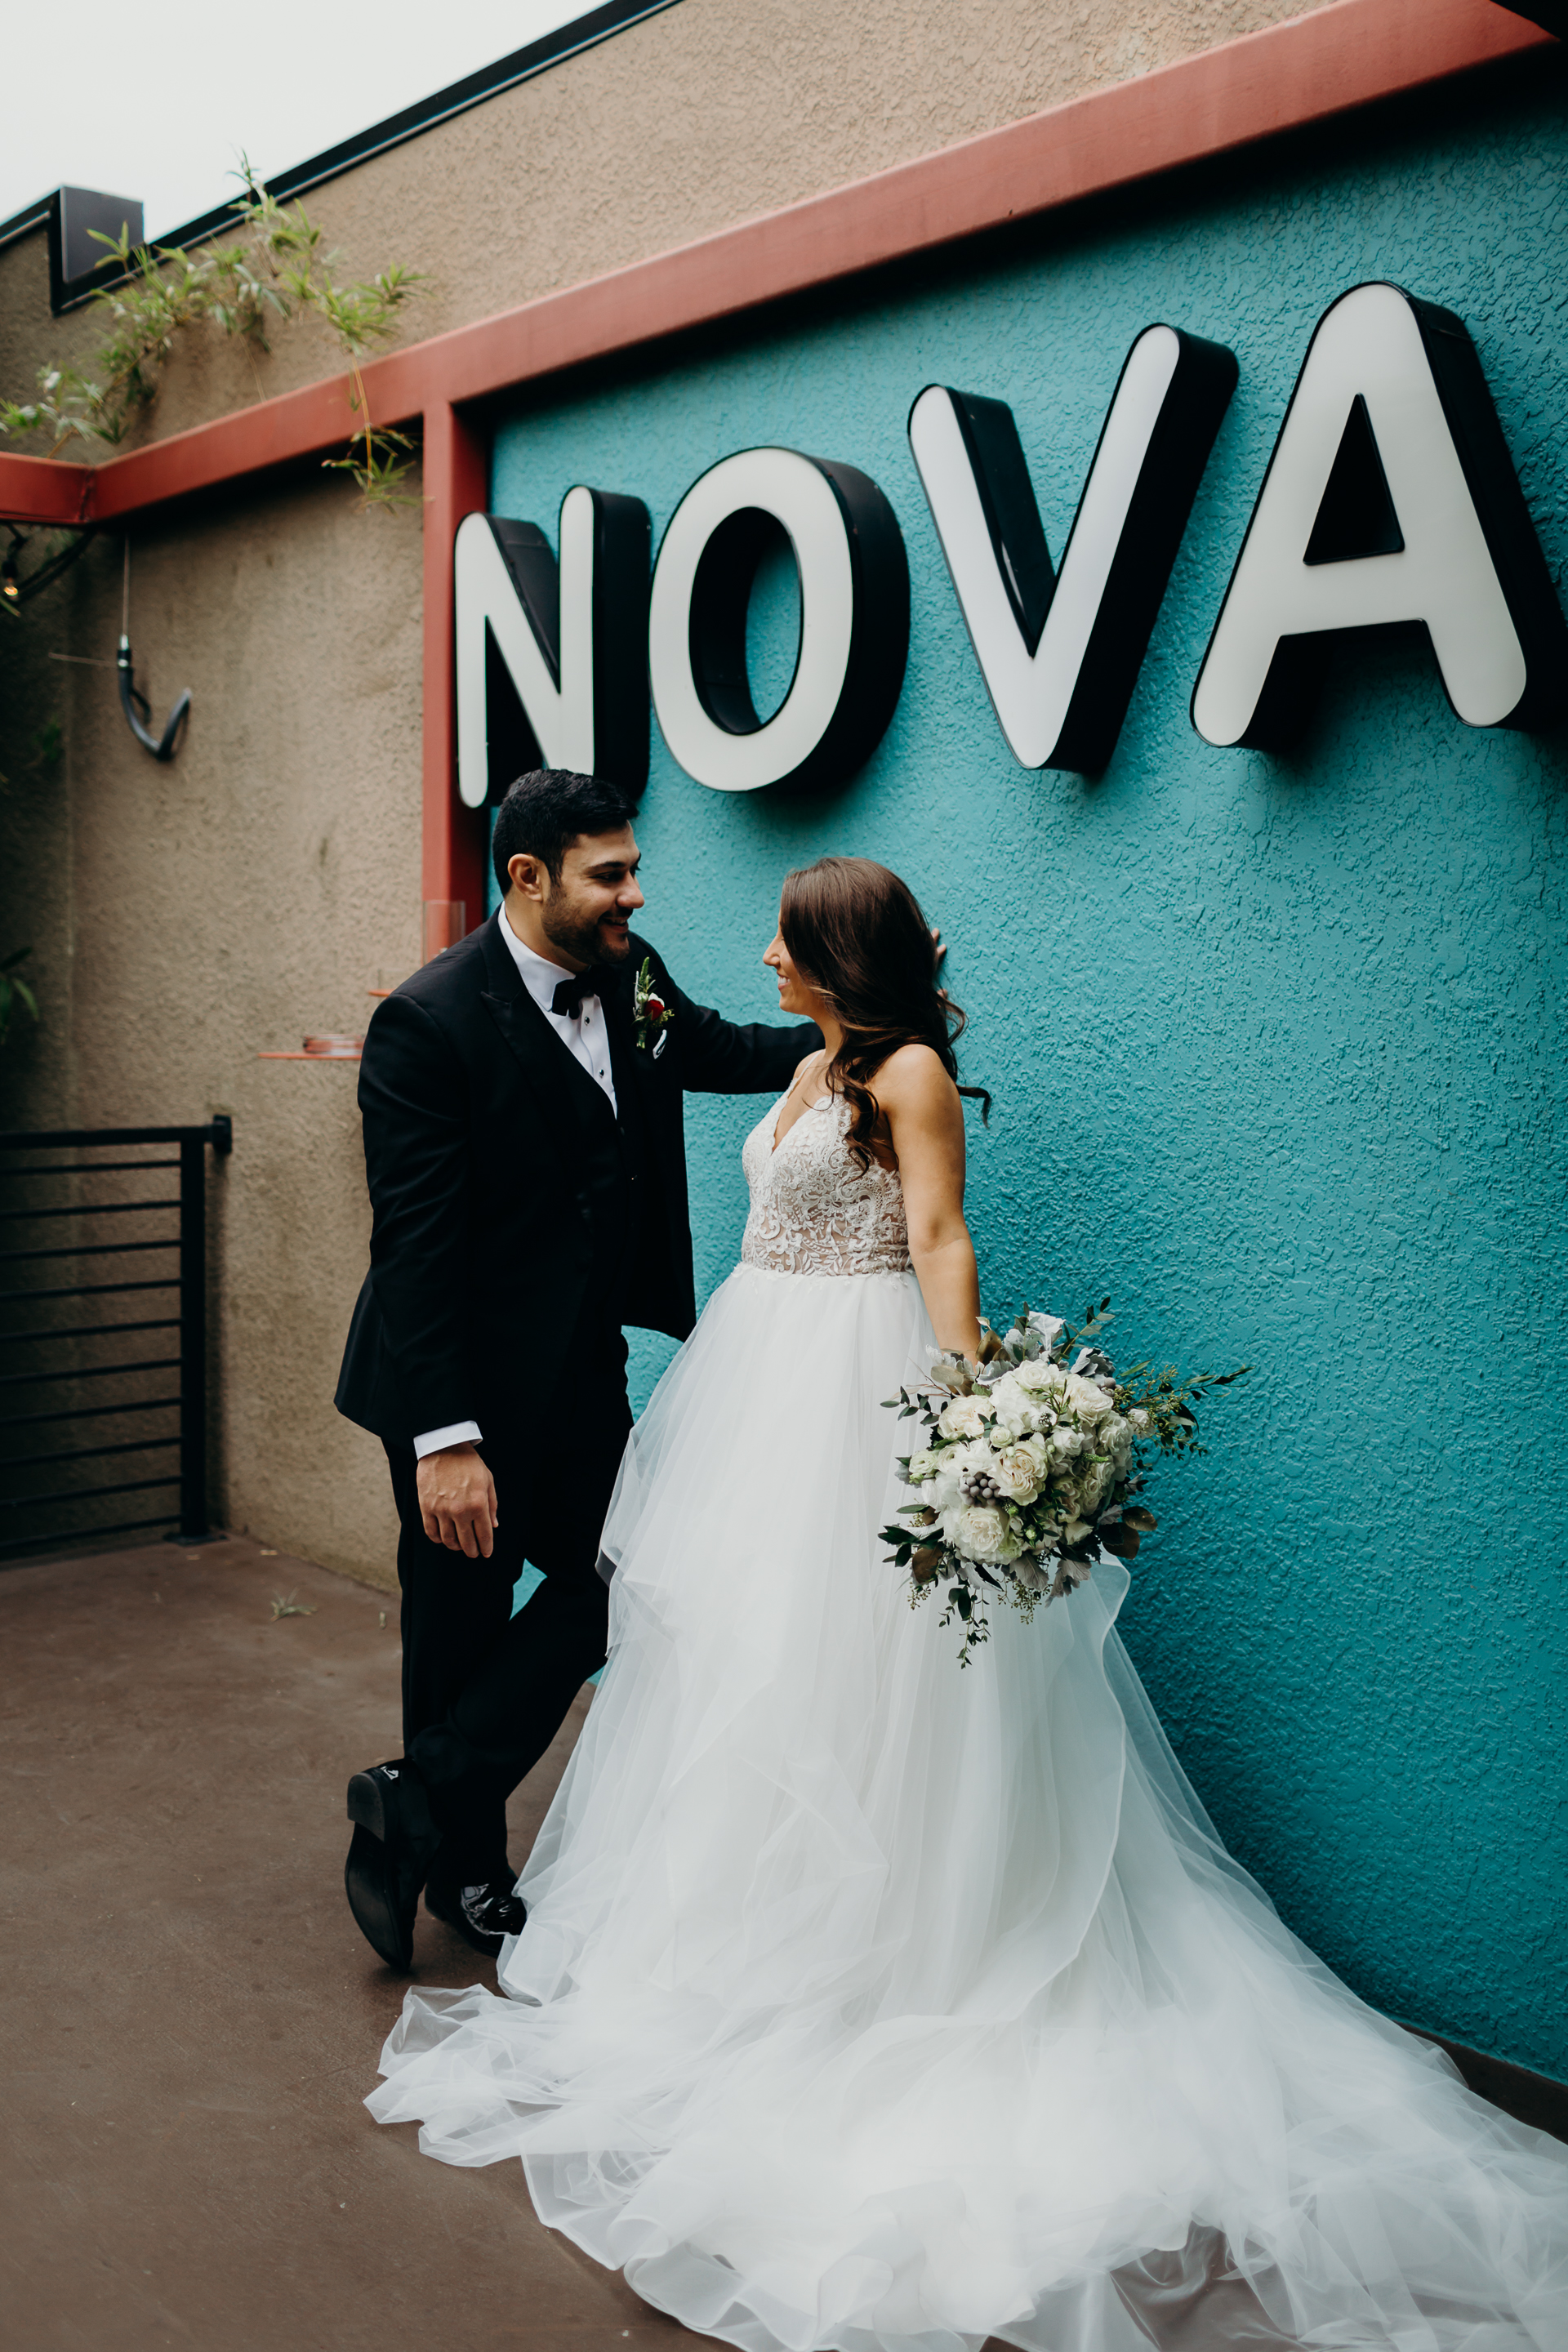 Gianna Keiko Atlanta San Francisco NYC Wedding Engagement Wedding Elopement Photographer_Sneak Peek-13.jpg